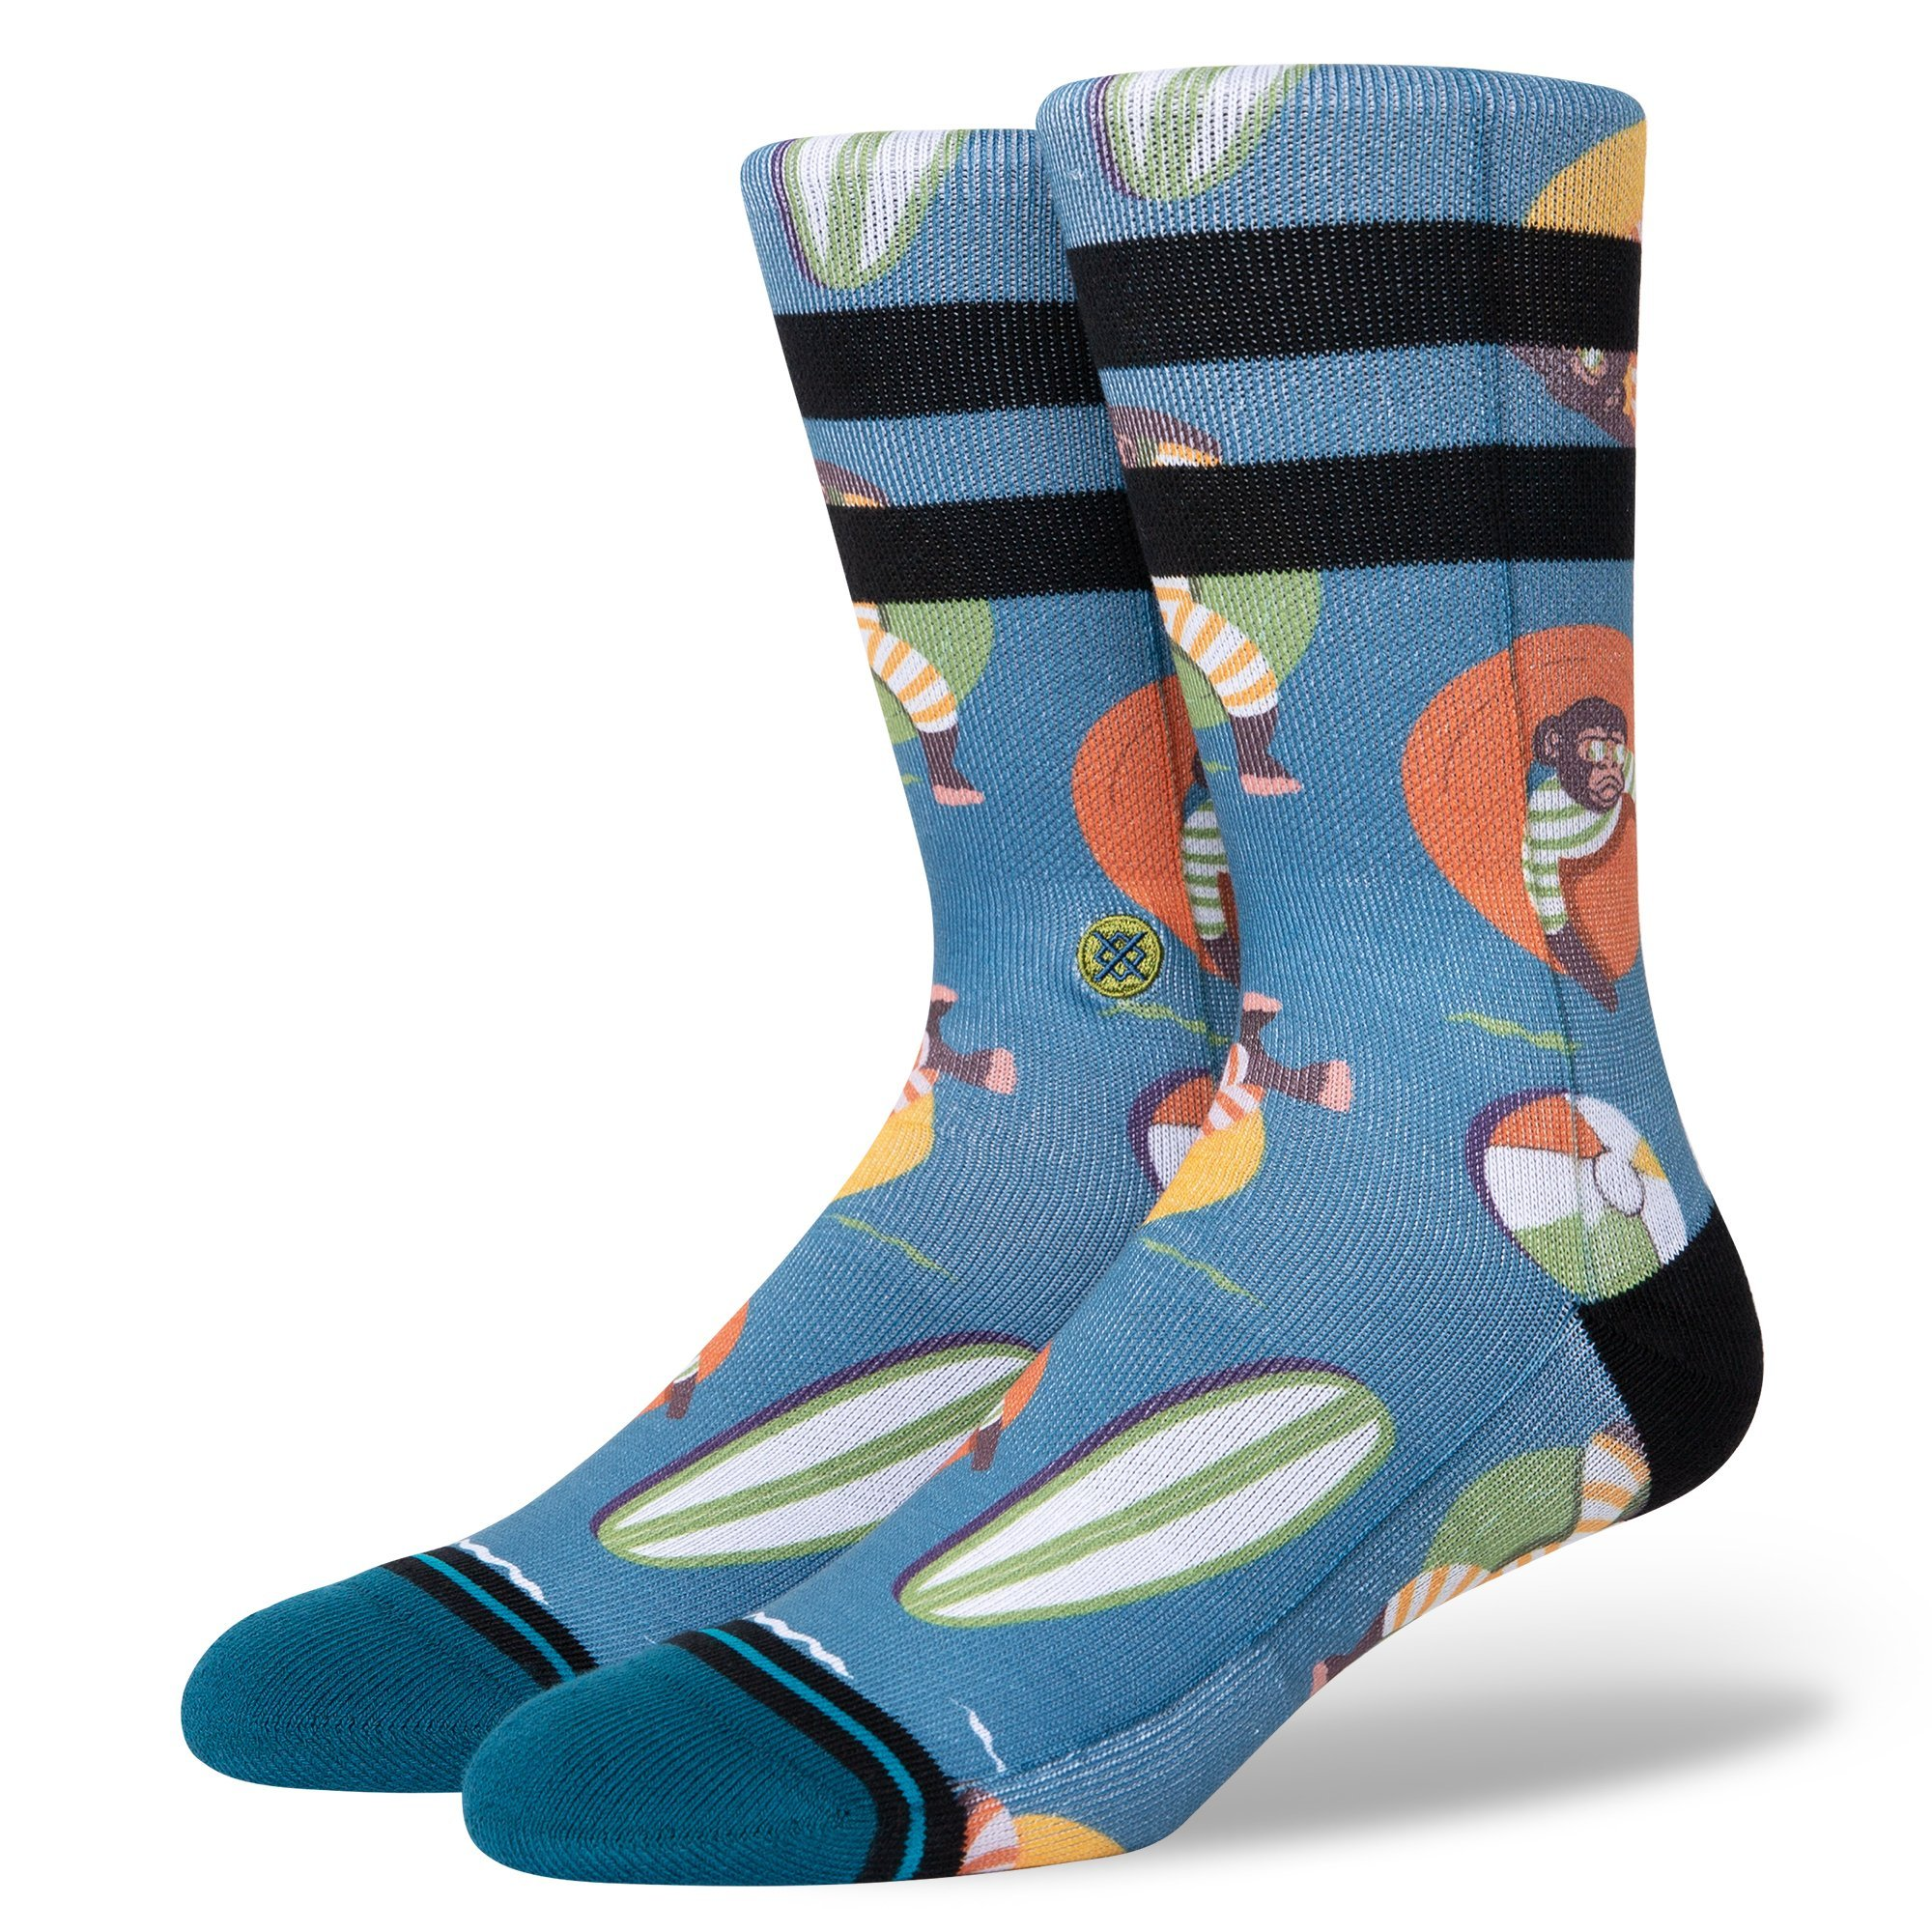 Stance - MONKEY CHILLIN - Teal